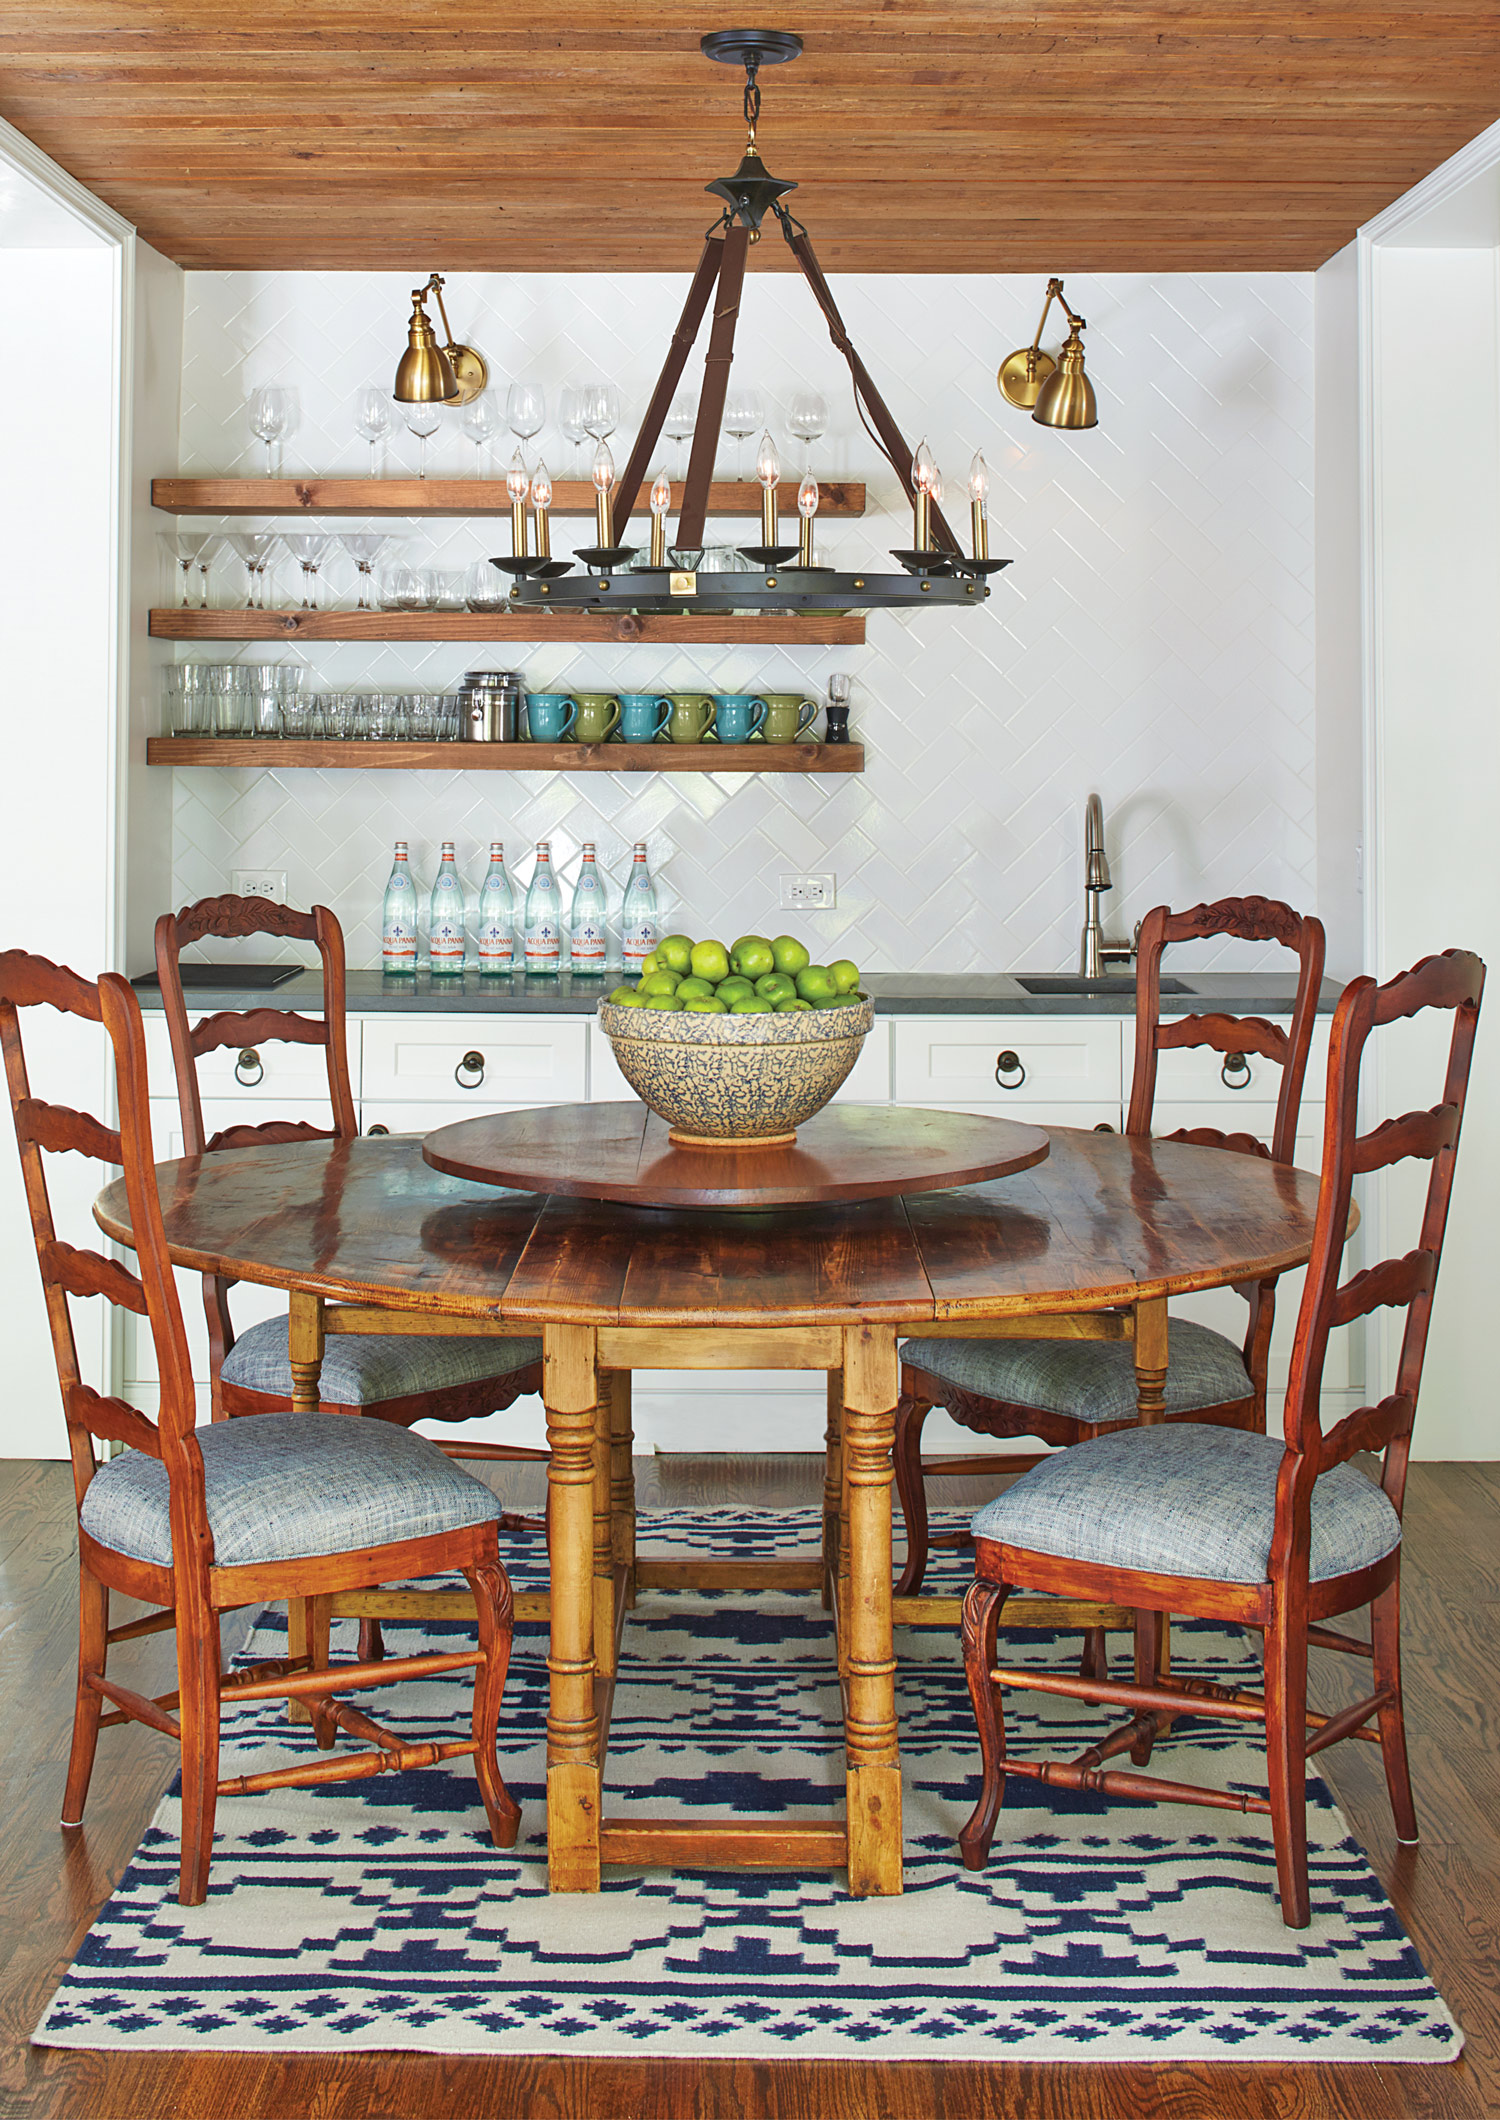 Open shelving helps turn the breakfast room into a space for casual entertaining.